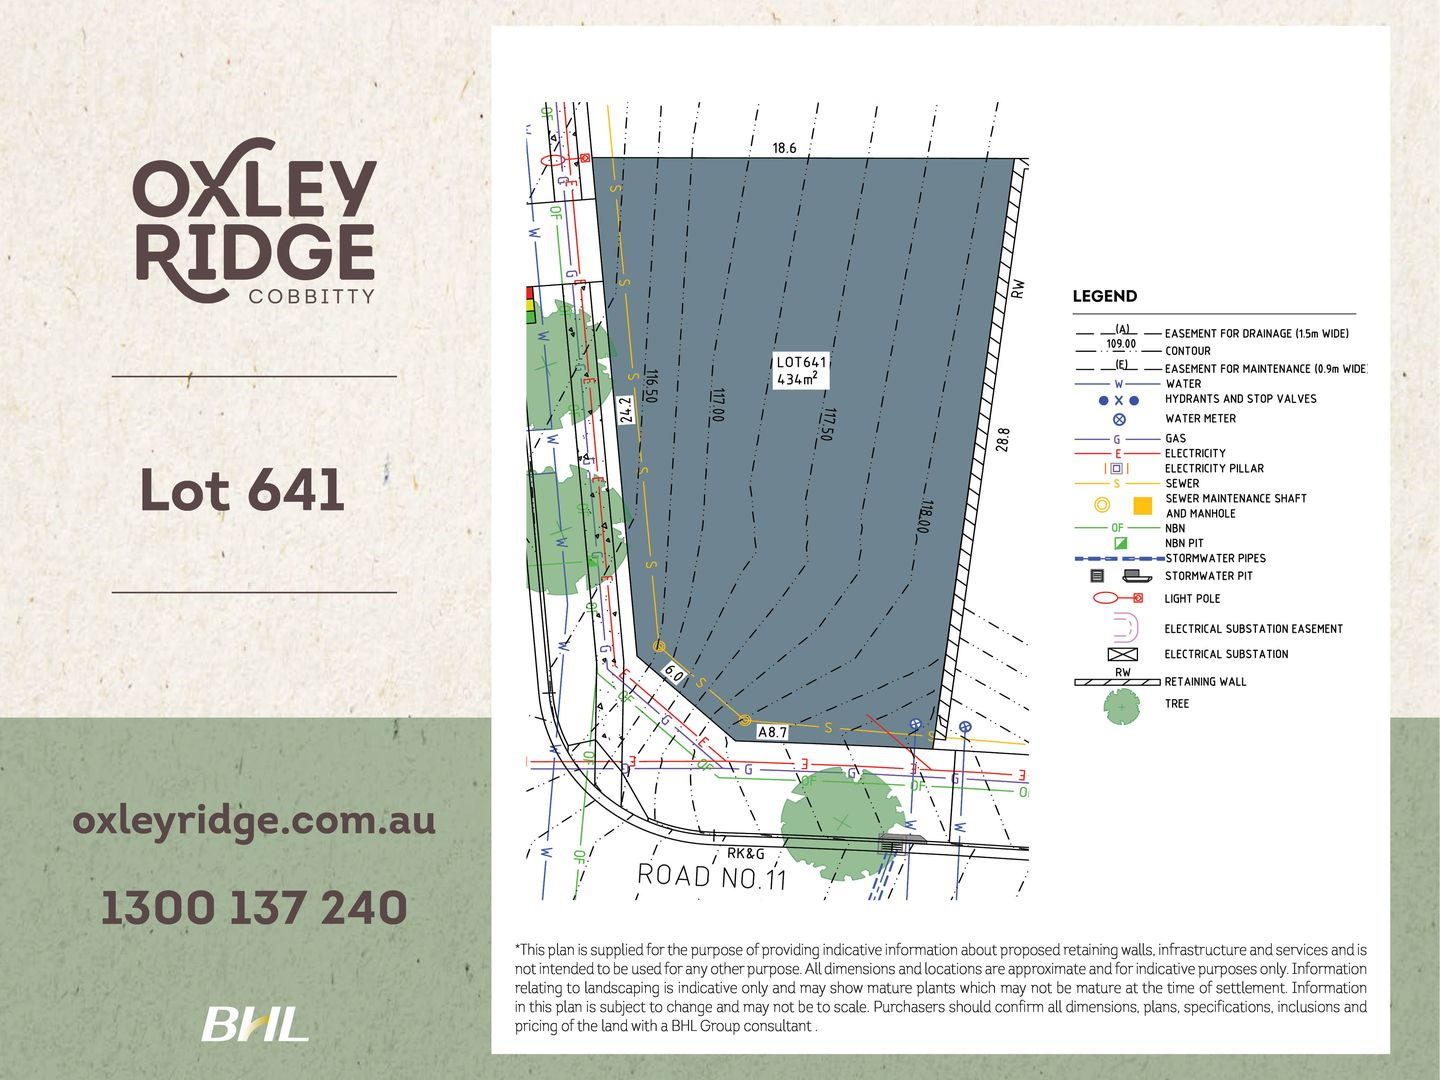 Lot 641 Oxley Ridge, Cobbitty NSW 2570, Image 0